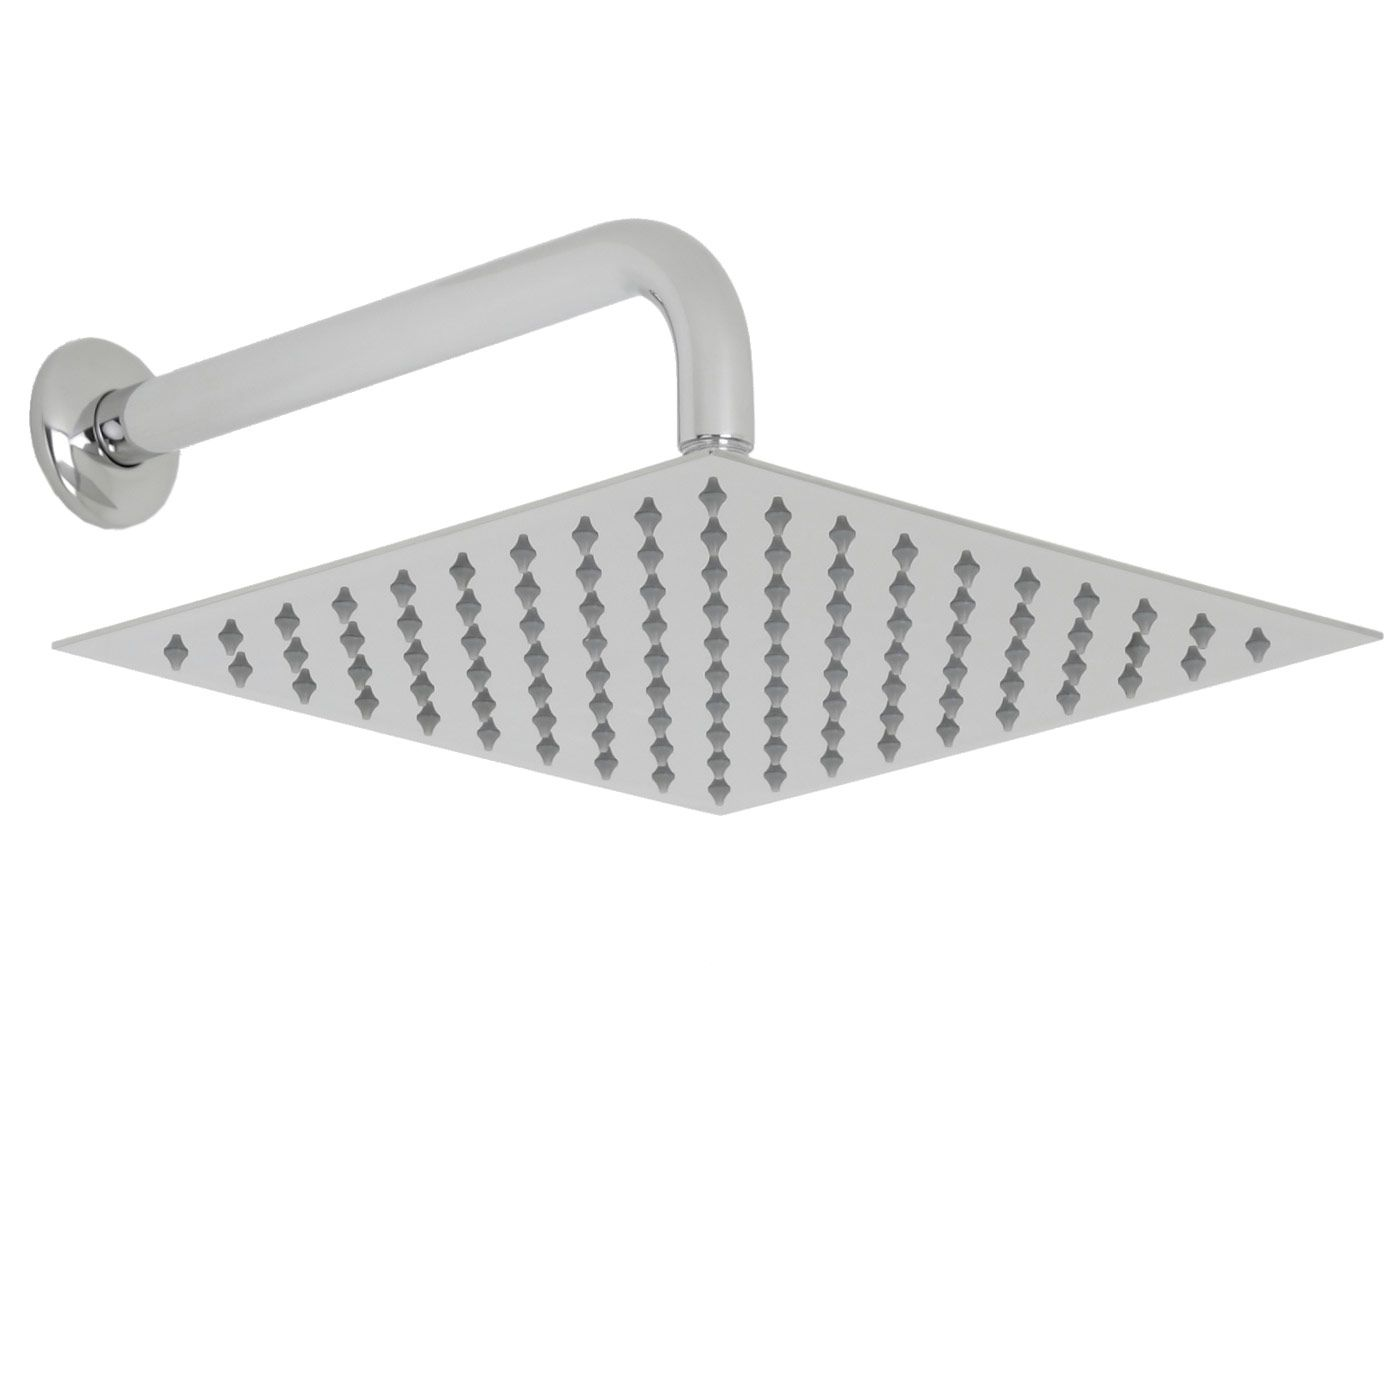 "Valquest 12"" Square Thin Shower Head with Wall Arm"